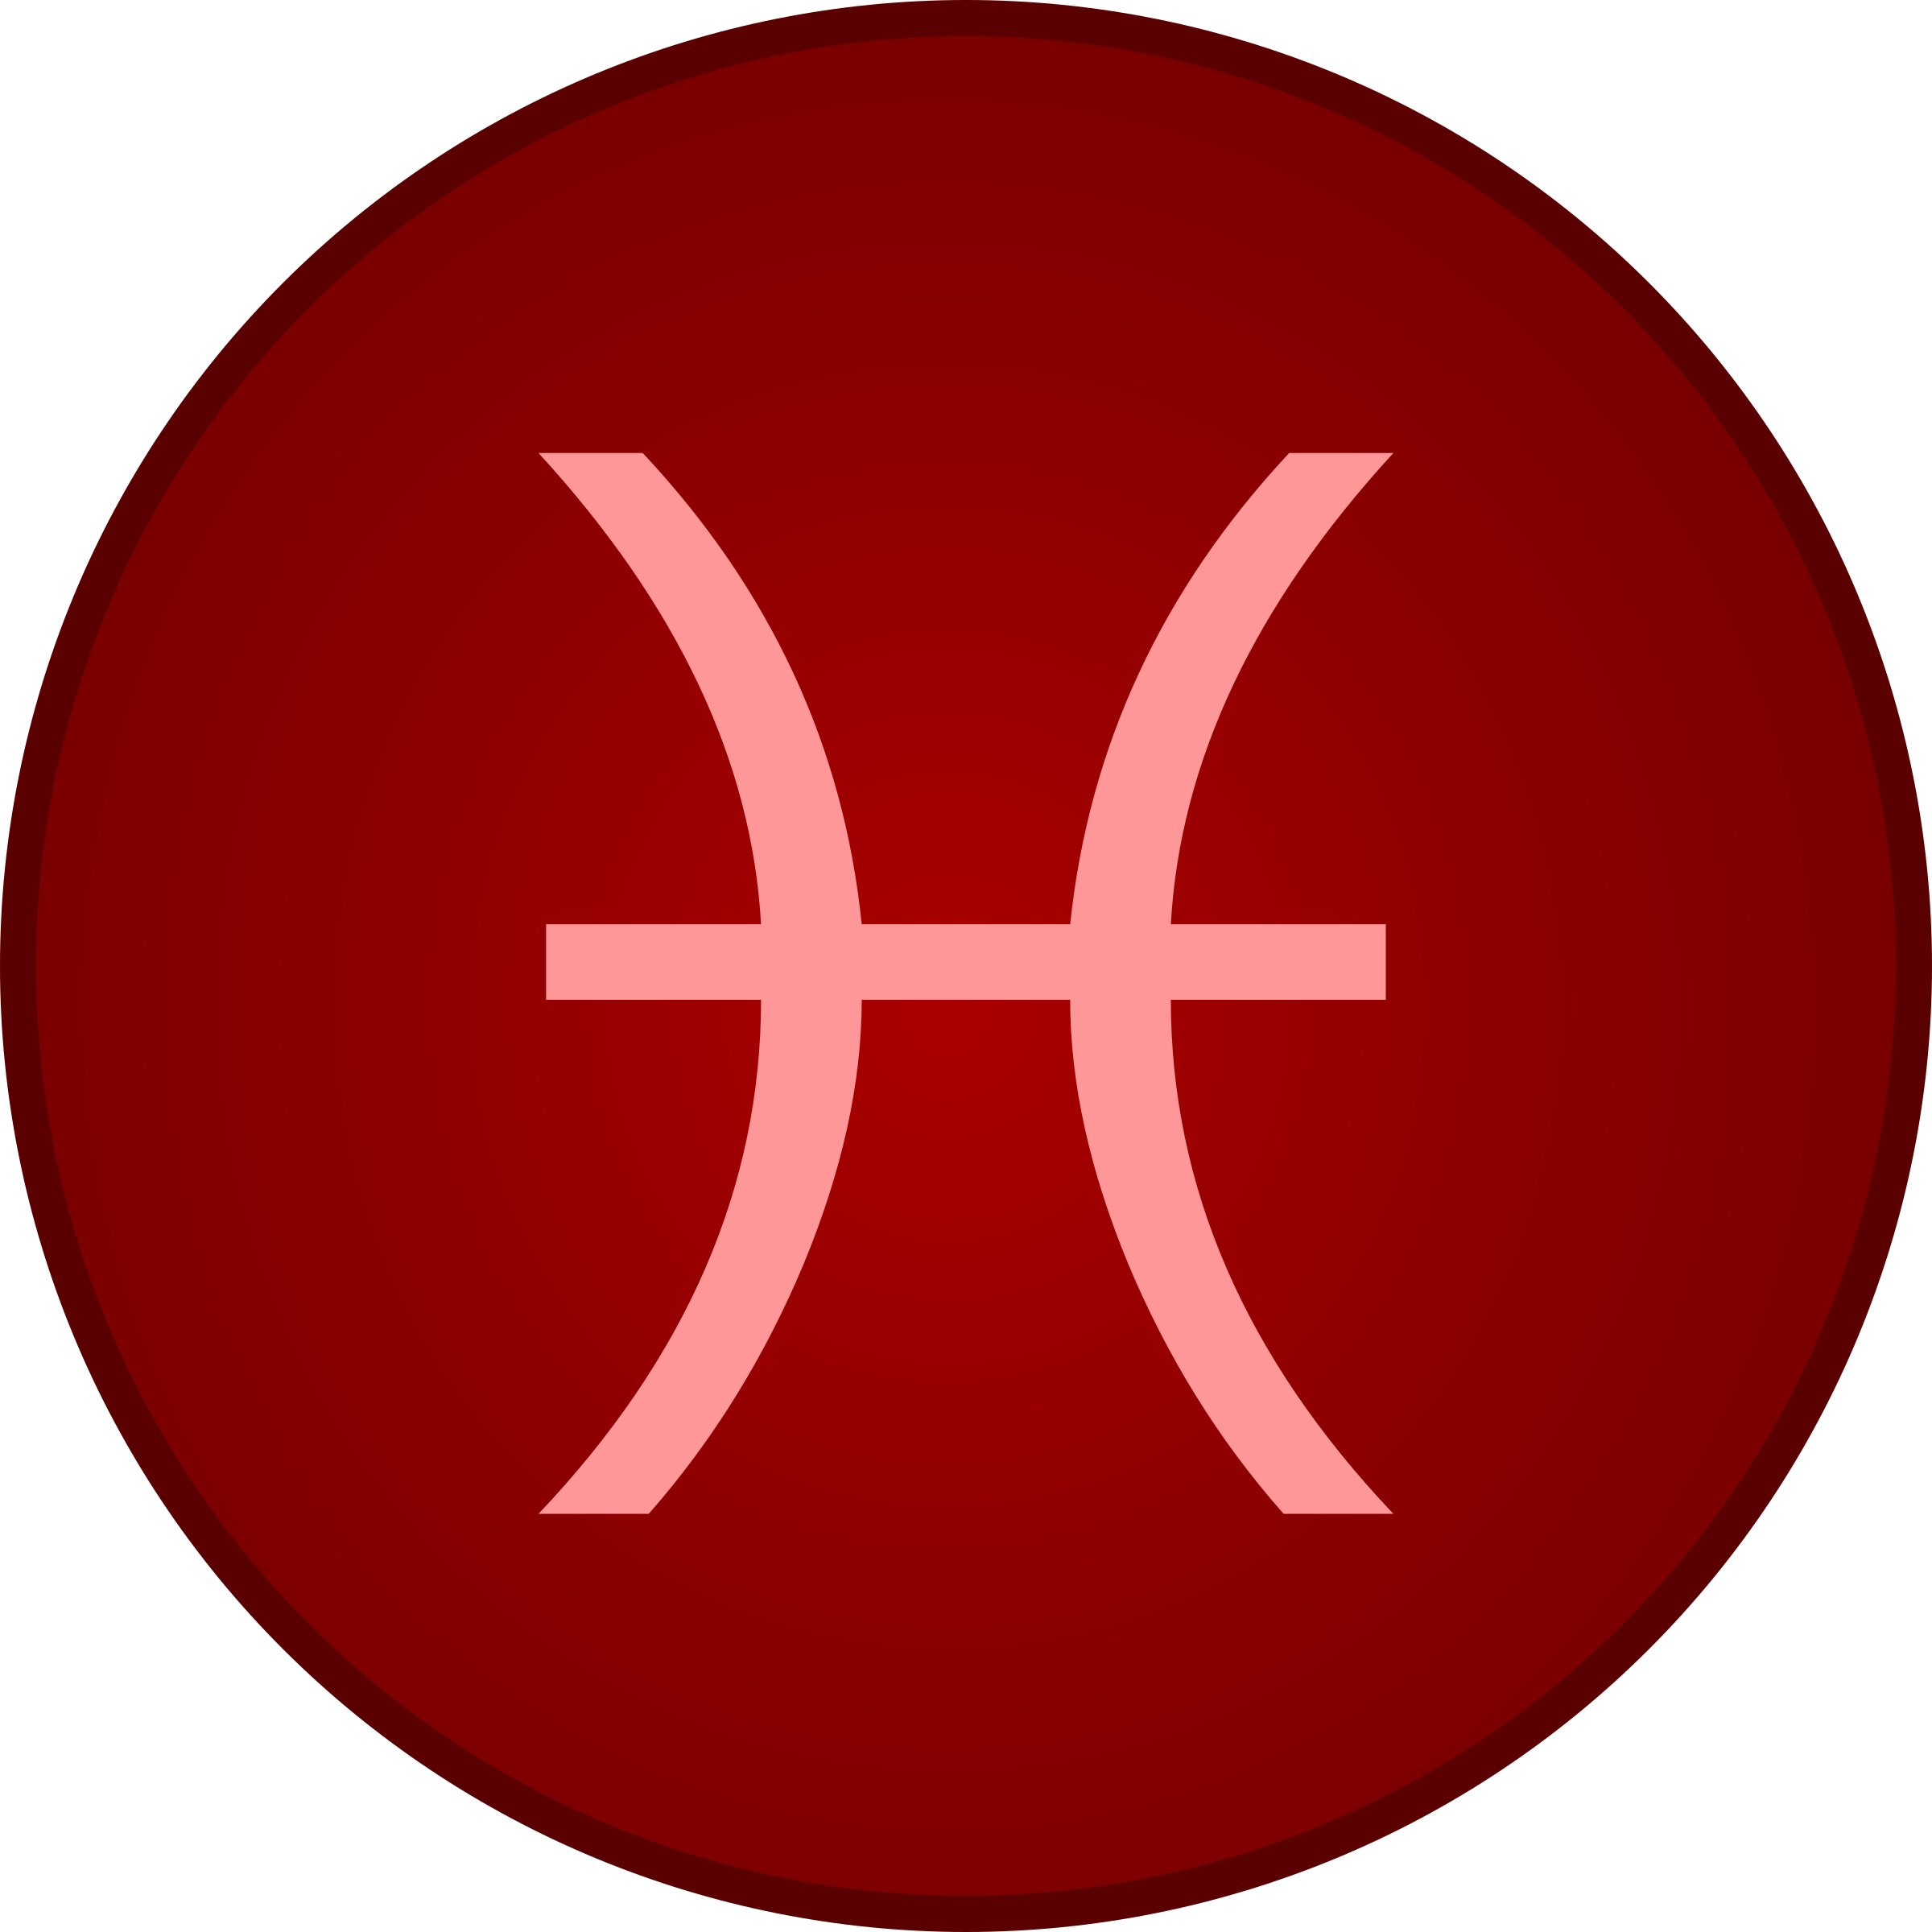 Pisces symbol by Firkin